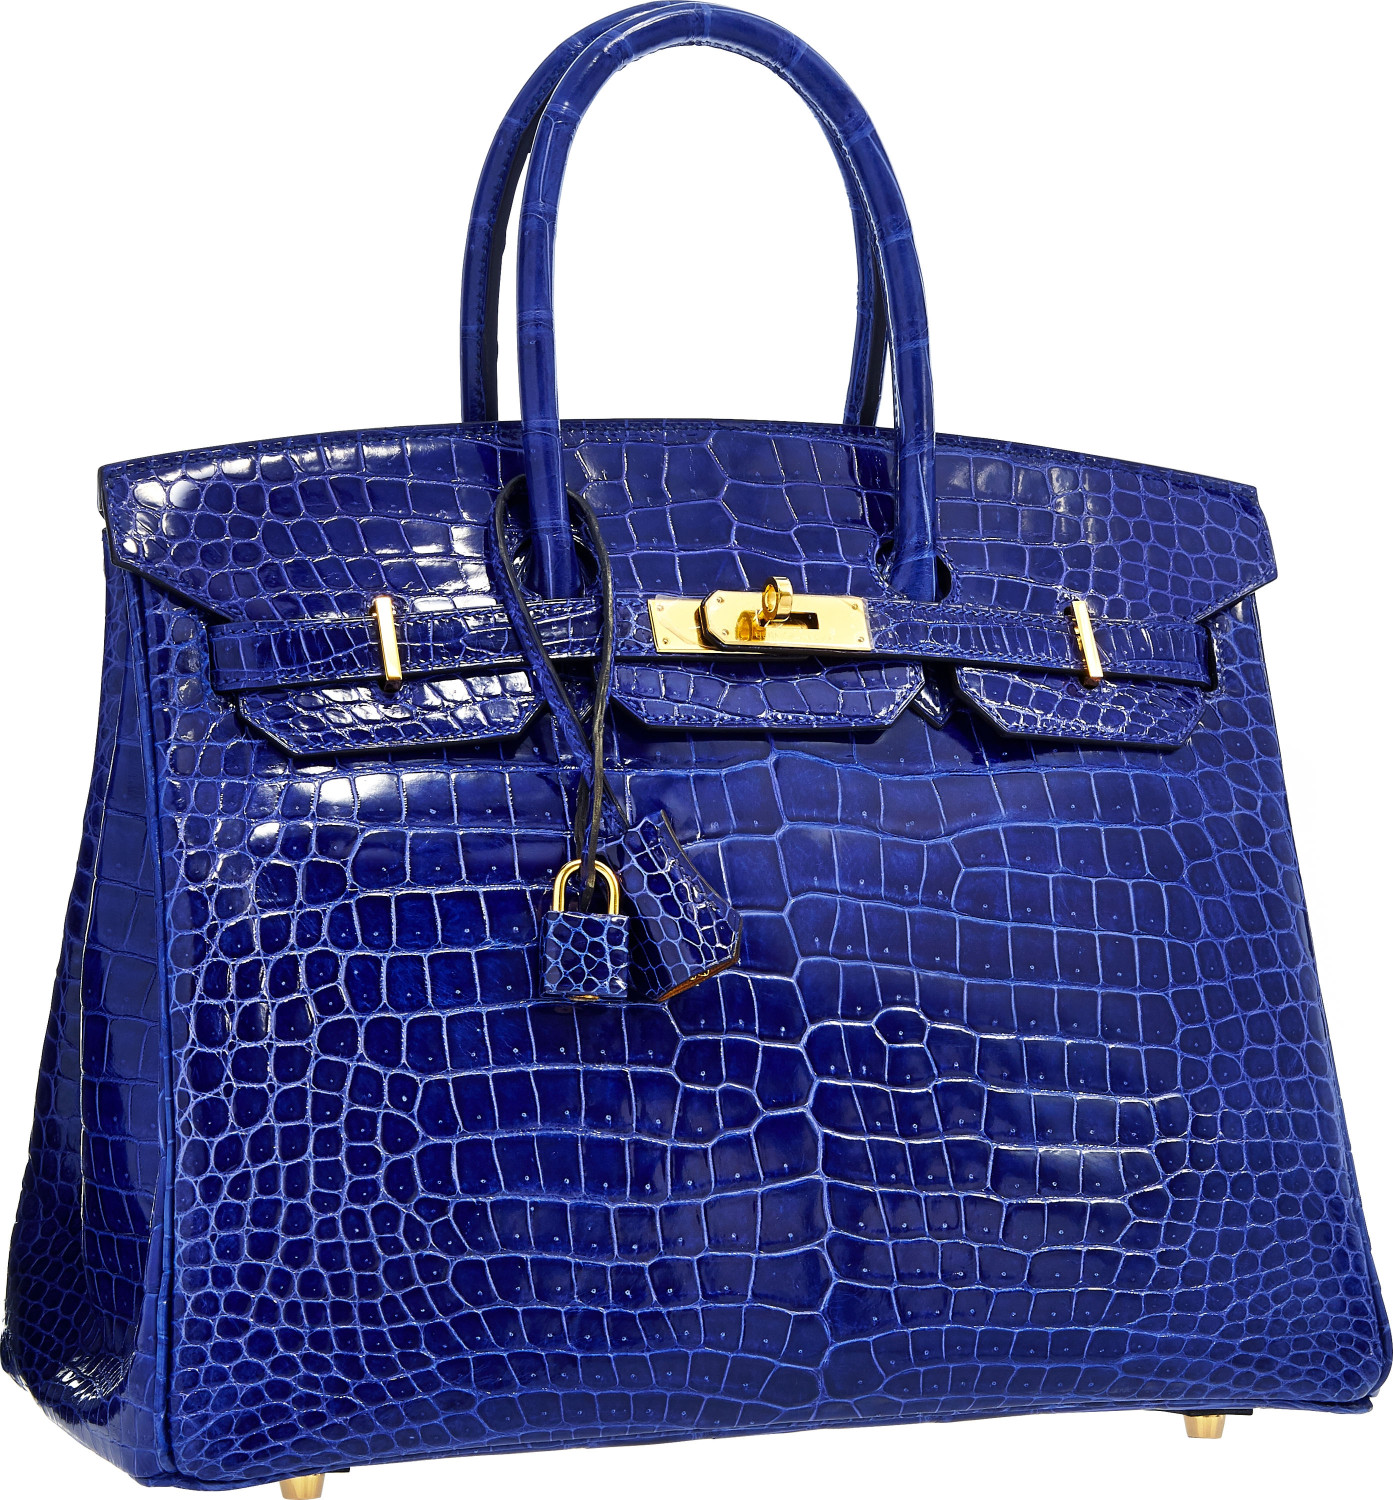 This Special Order Horseshoe 35cm Shiny Electric Blue Birkin in Porosus Crocodile, the most desirable material, brought $81,250 at a 2015 Heritage New York Valentine Signature Auction. Courtesy Heritage Auctions